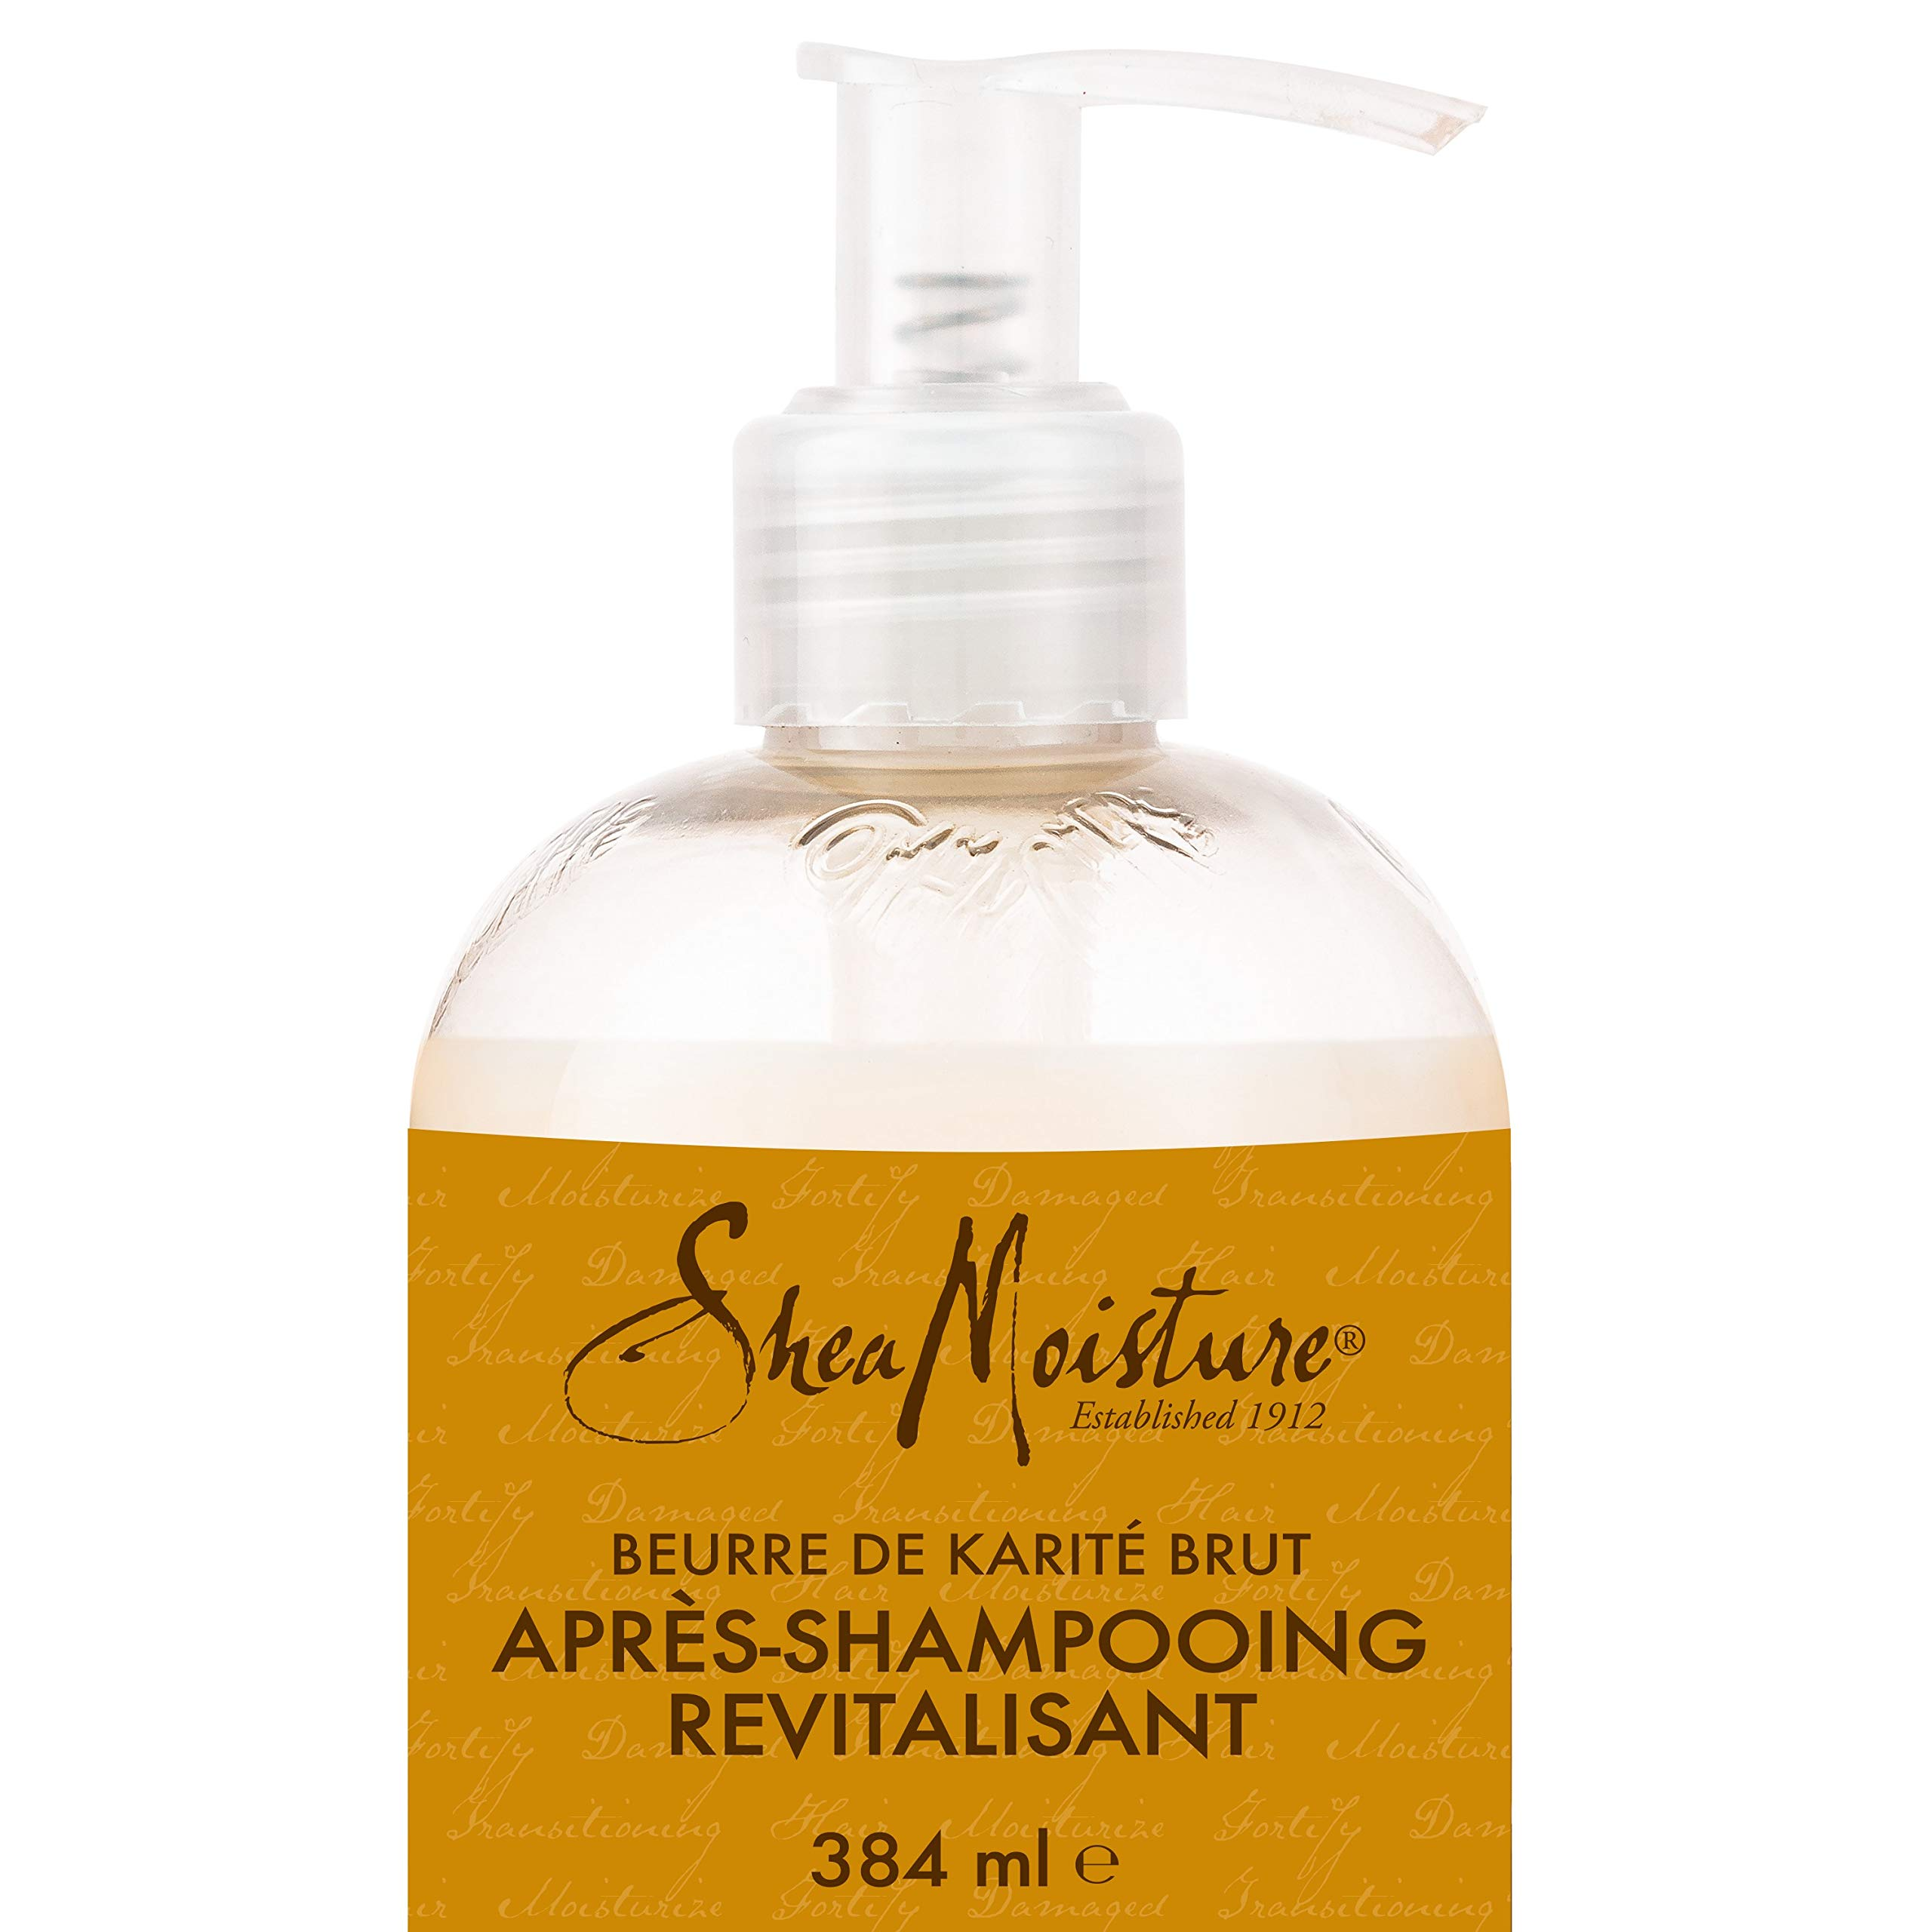 Shea Moisture Raw Shea Butter Restorative Conditioner, 379 ml